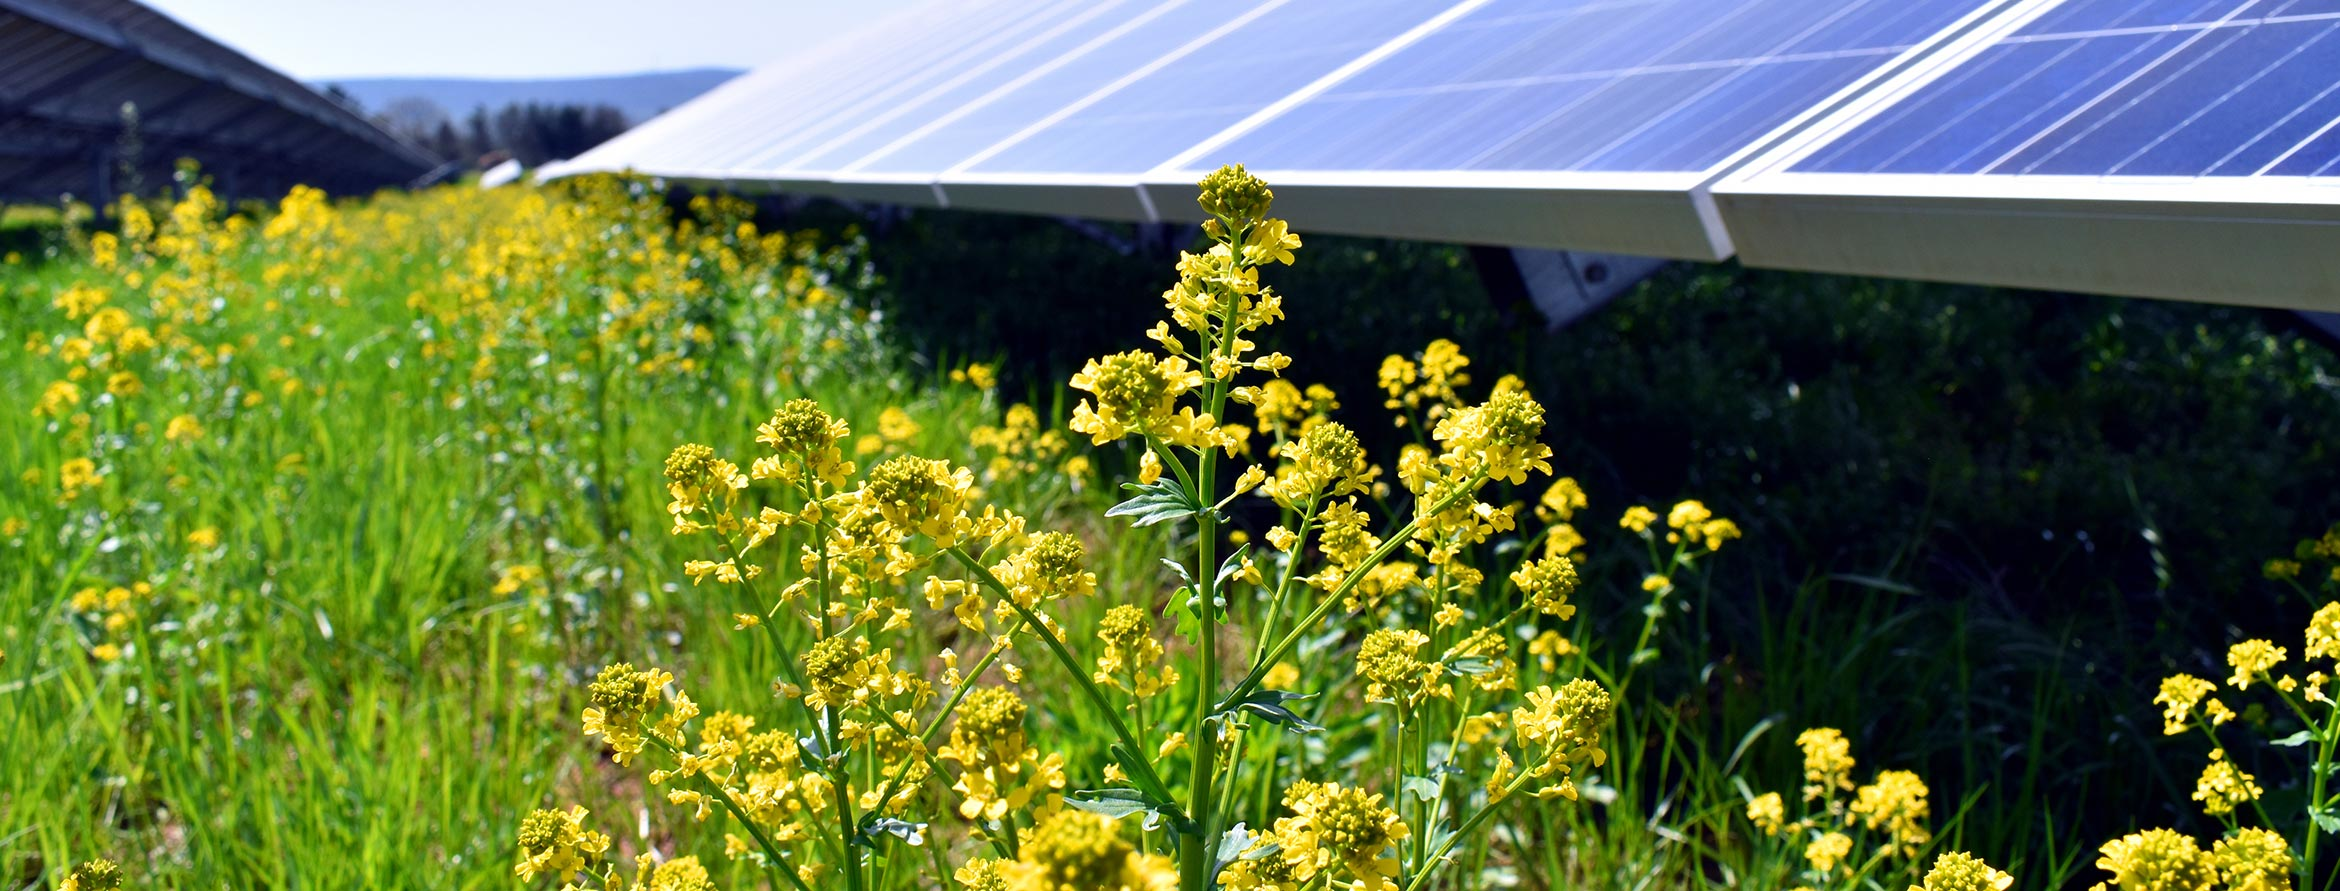 Solar panels with pollinator species and grass